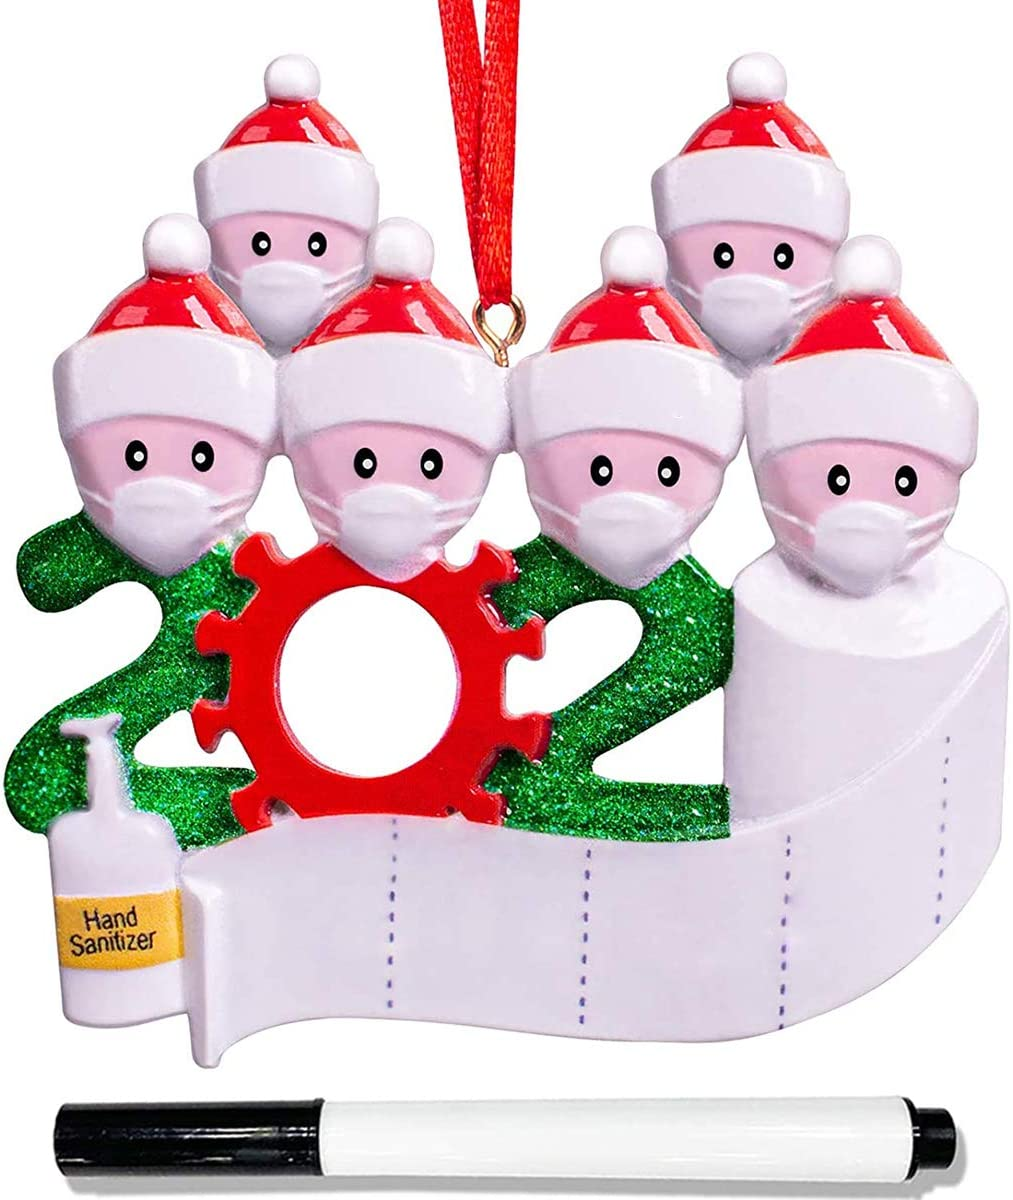 IFUDOIT 2020 Christmas Ornaments,Personalized Quarantine Survivor Family Christmas Tree Ornaments,Holiday Decorations DIY Name Blessing Resin Snowman Christmas Tree Pendants with 1 Marker Pen